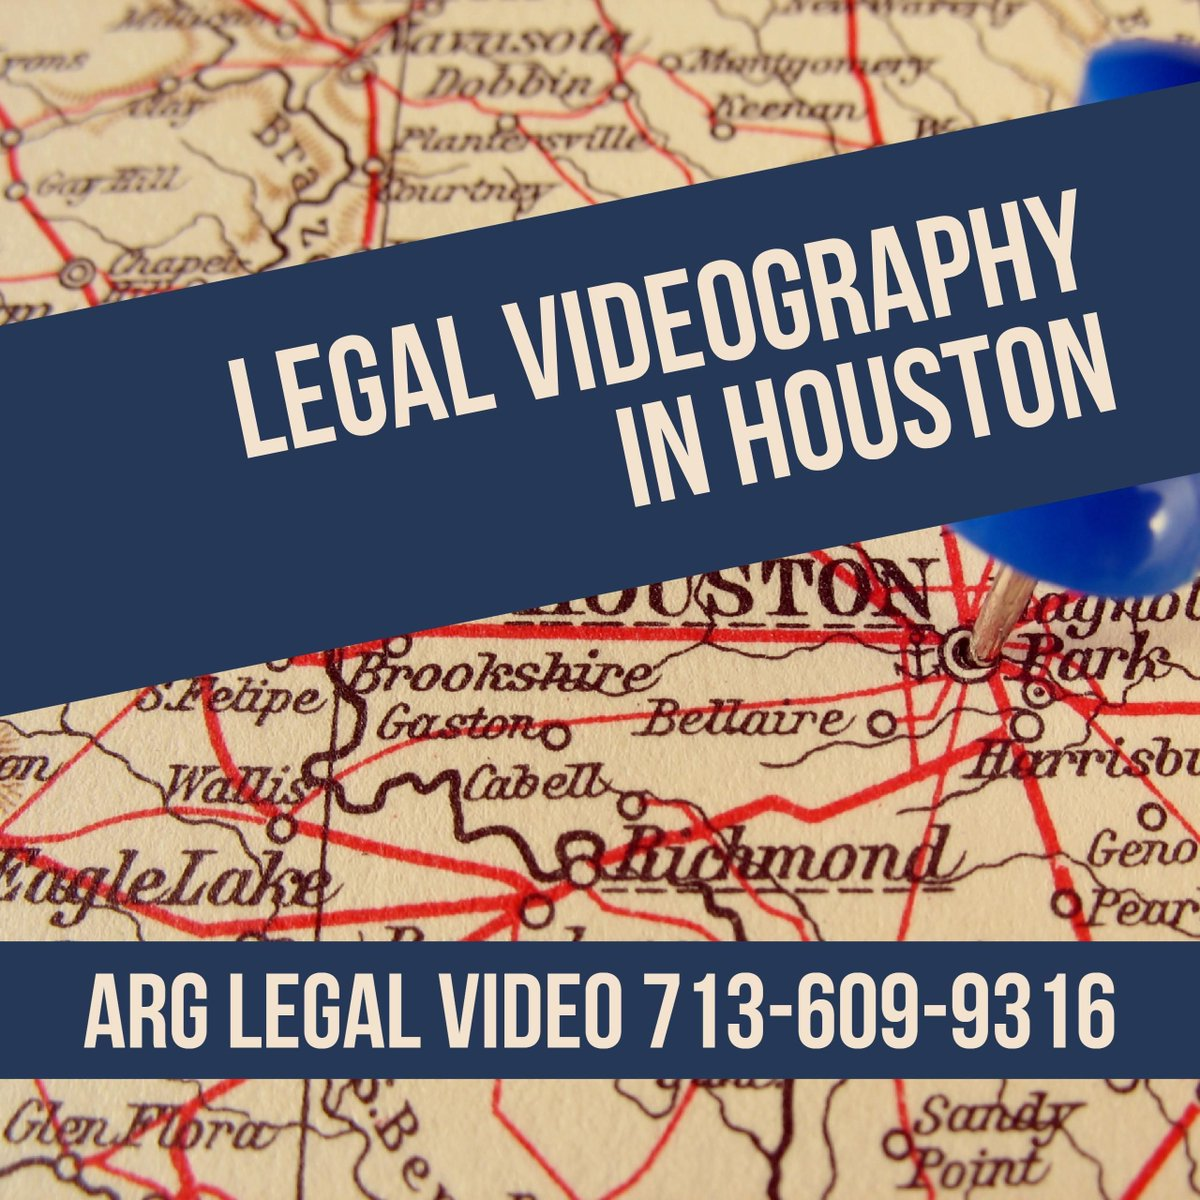 Need a Legal Videographer in Houston? Get the best. ARG Legal VIdeo, Go right to the source. 713-609-9316 #txlegal <br>http://pic.twitter.com/kC8Nm6Ke2D